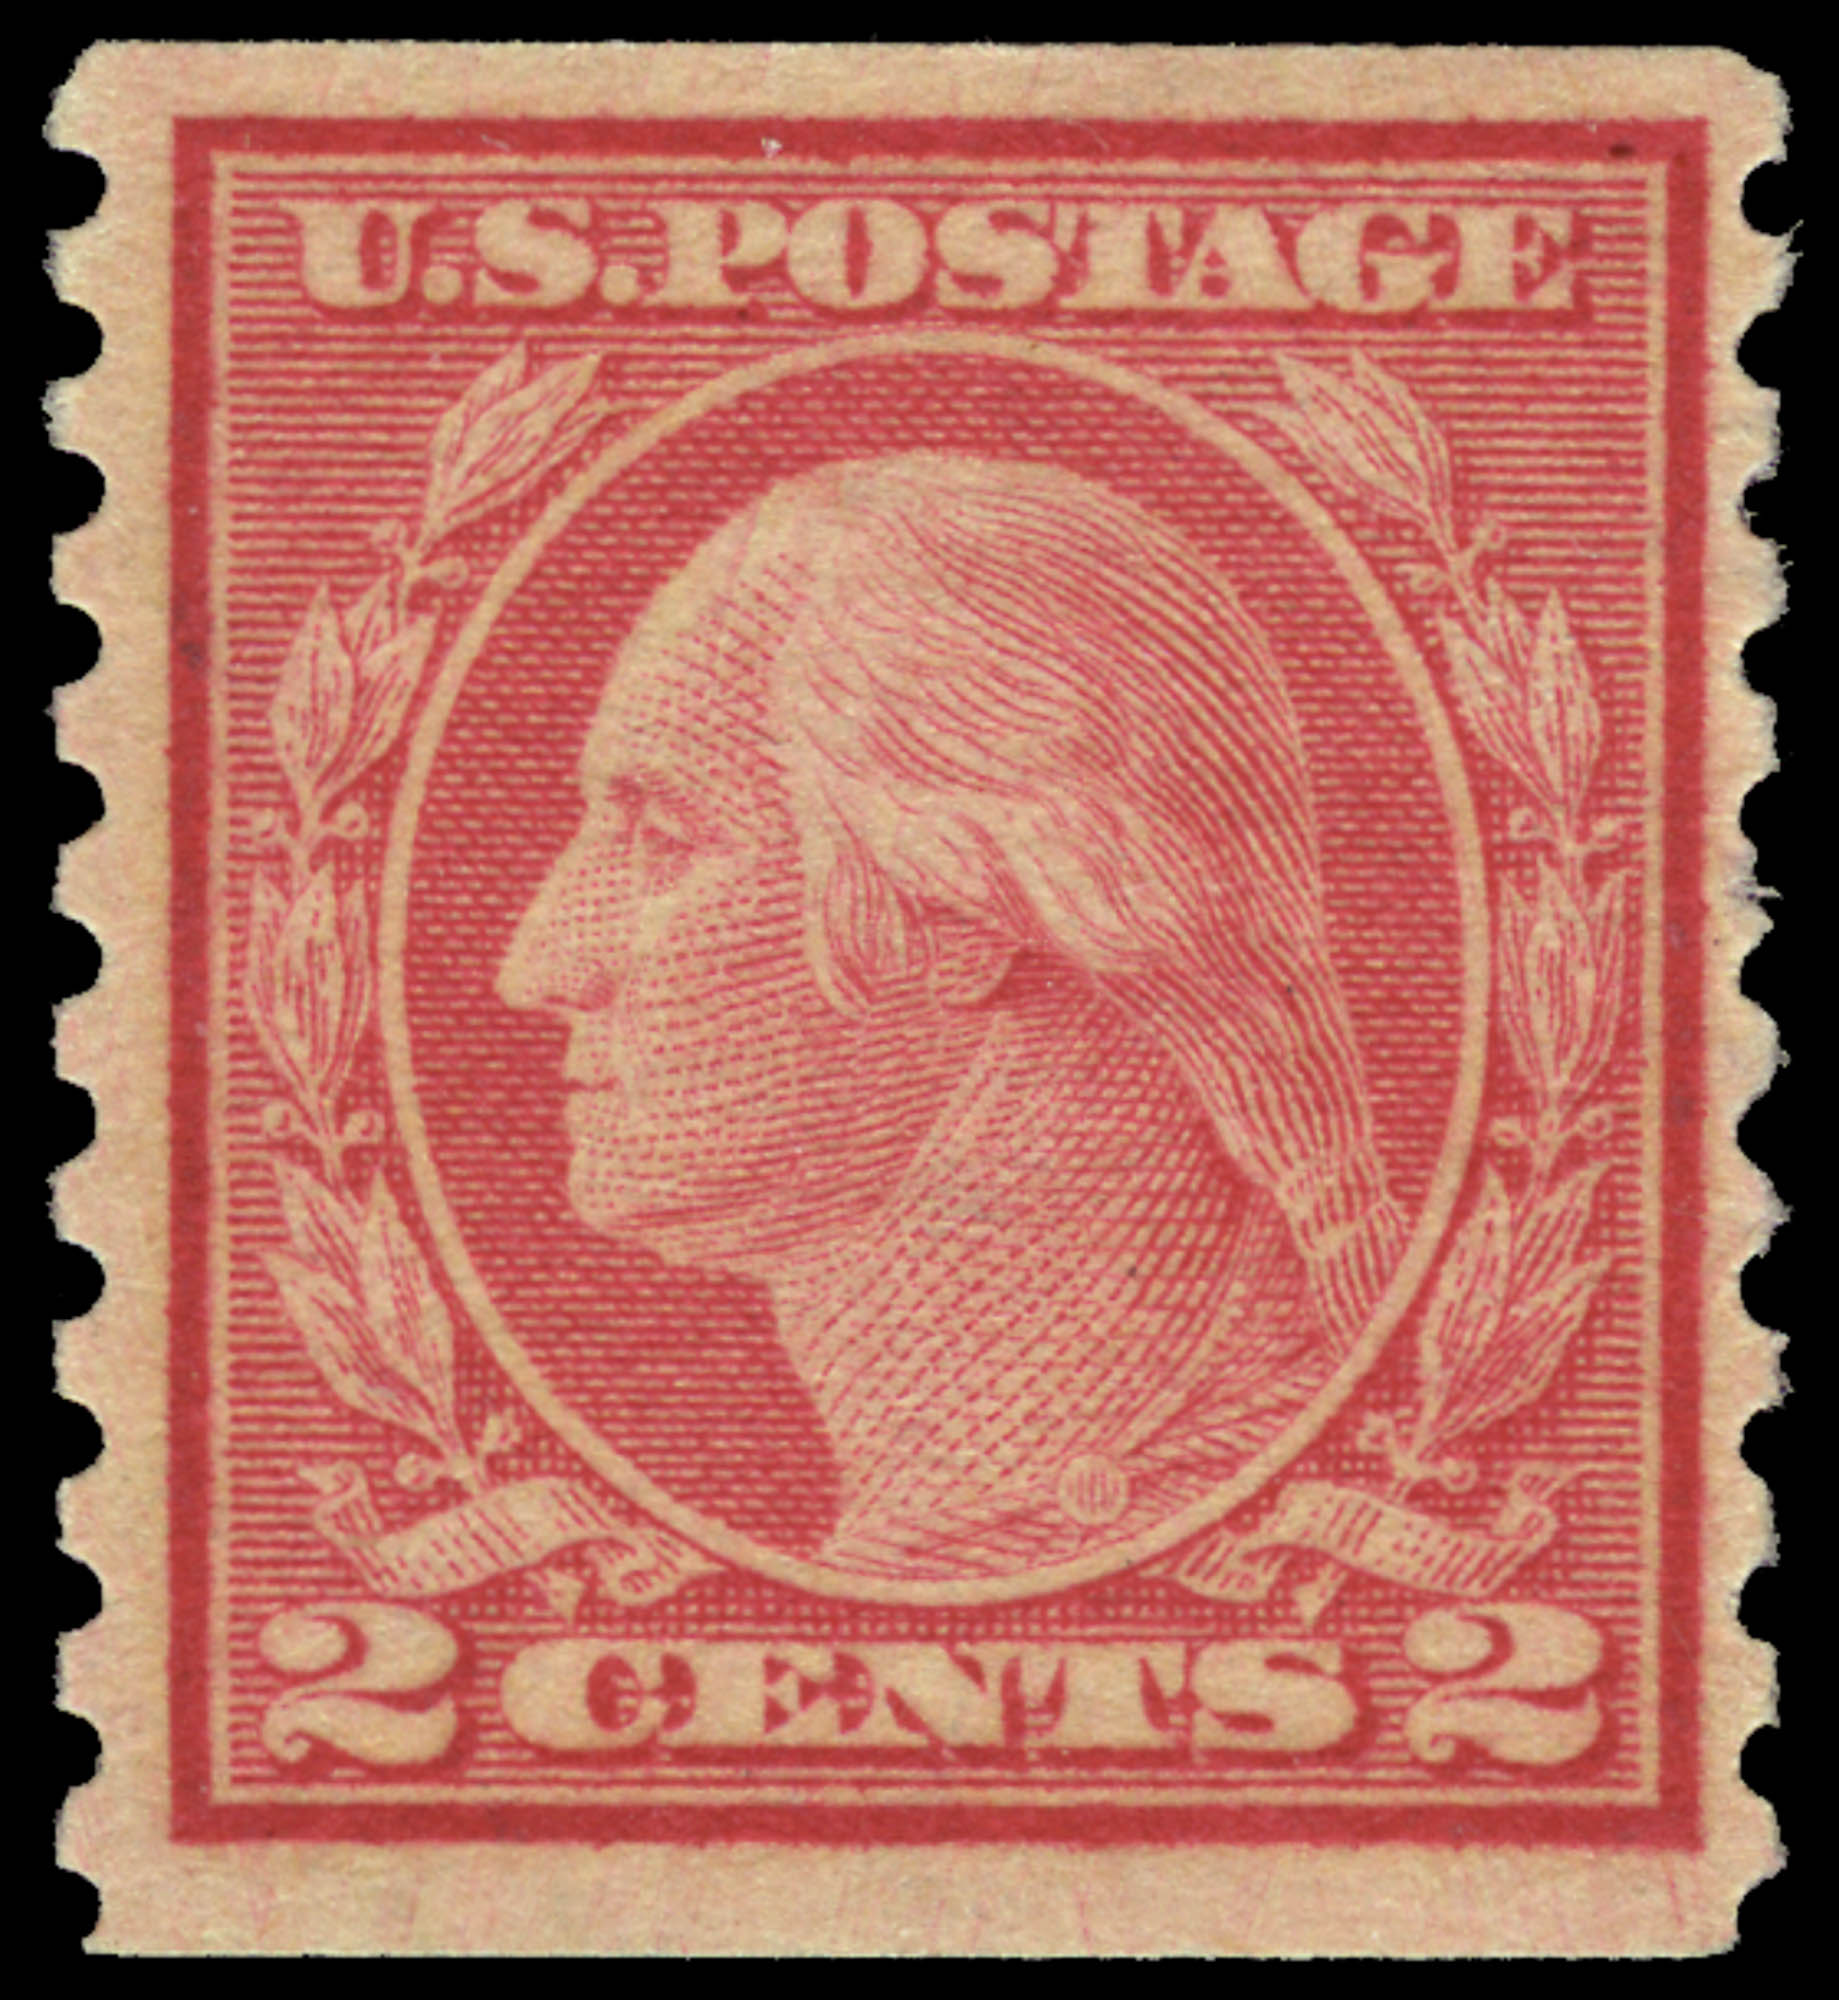 Lot image - United States 1916 2 Cents Type II Coil Scott 491